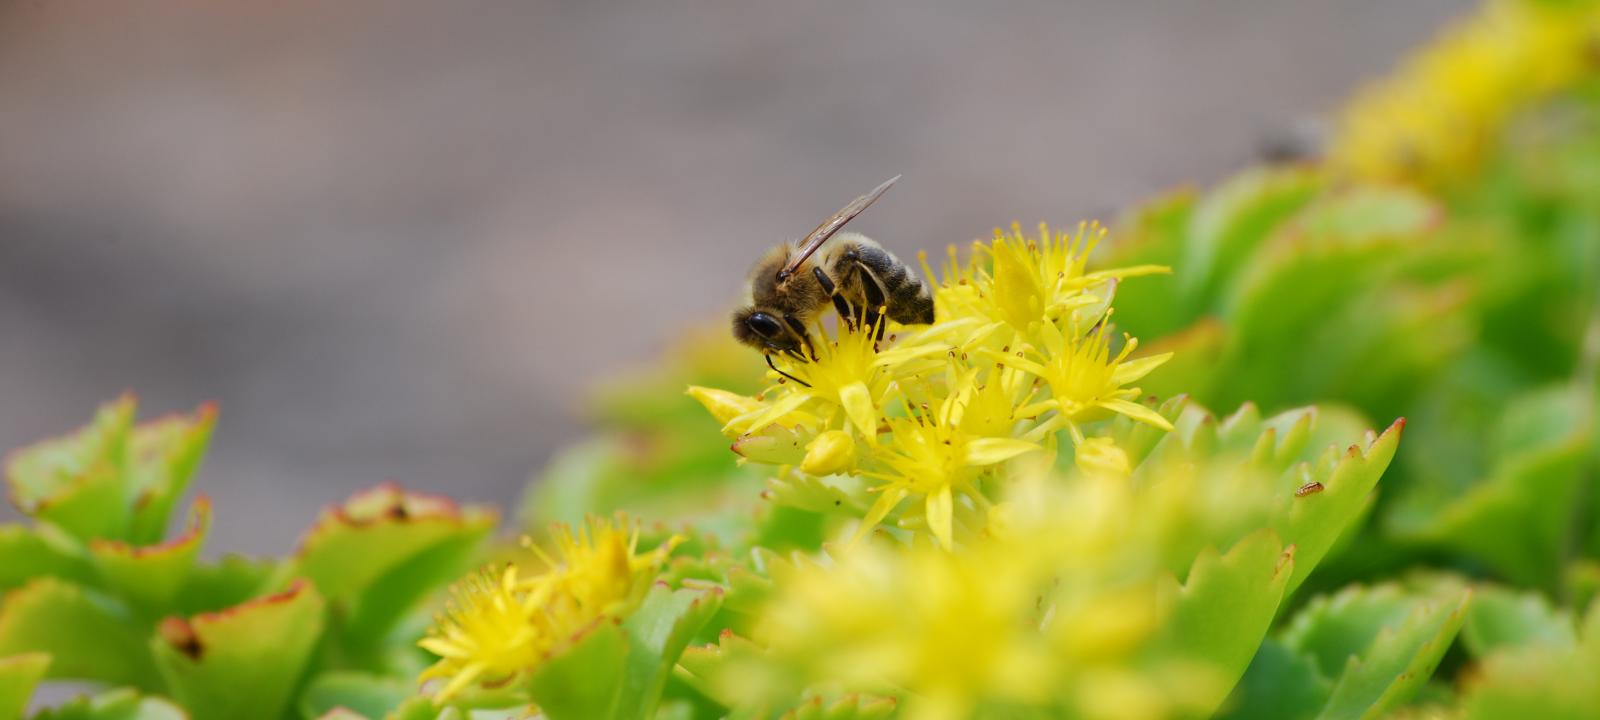 Bee on Sedum plant